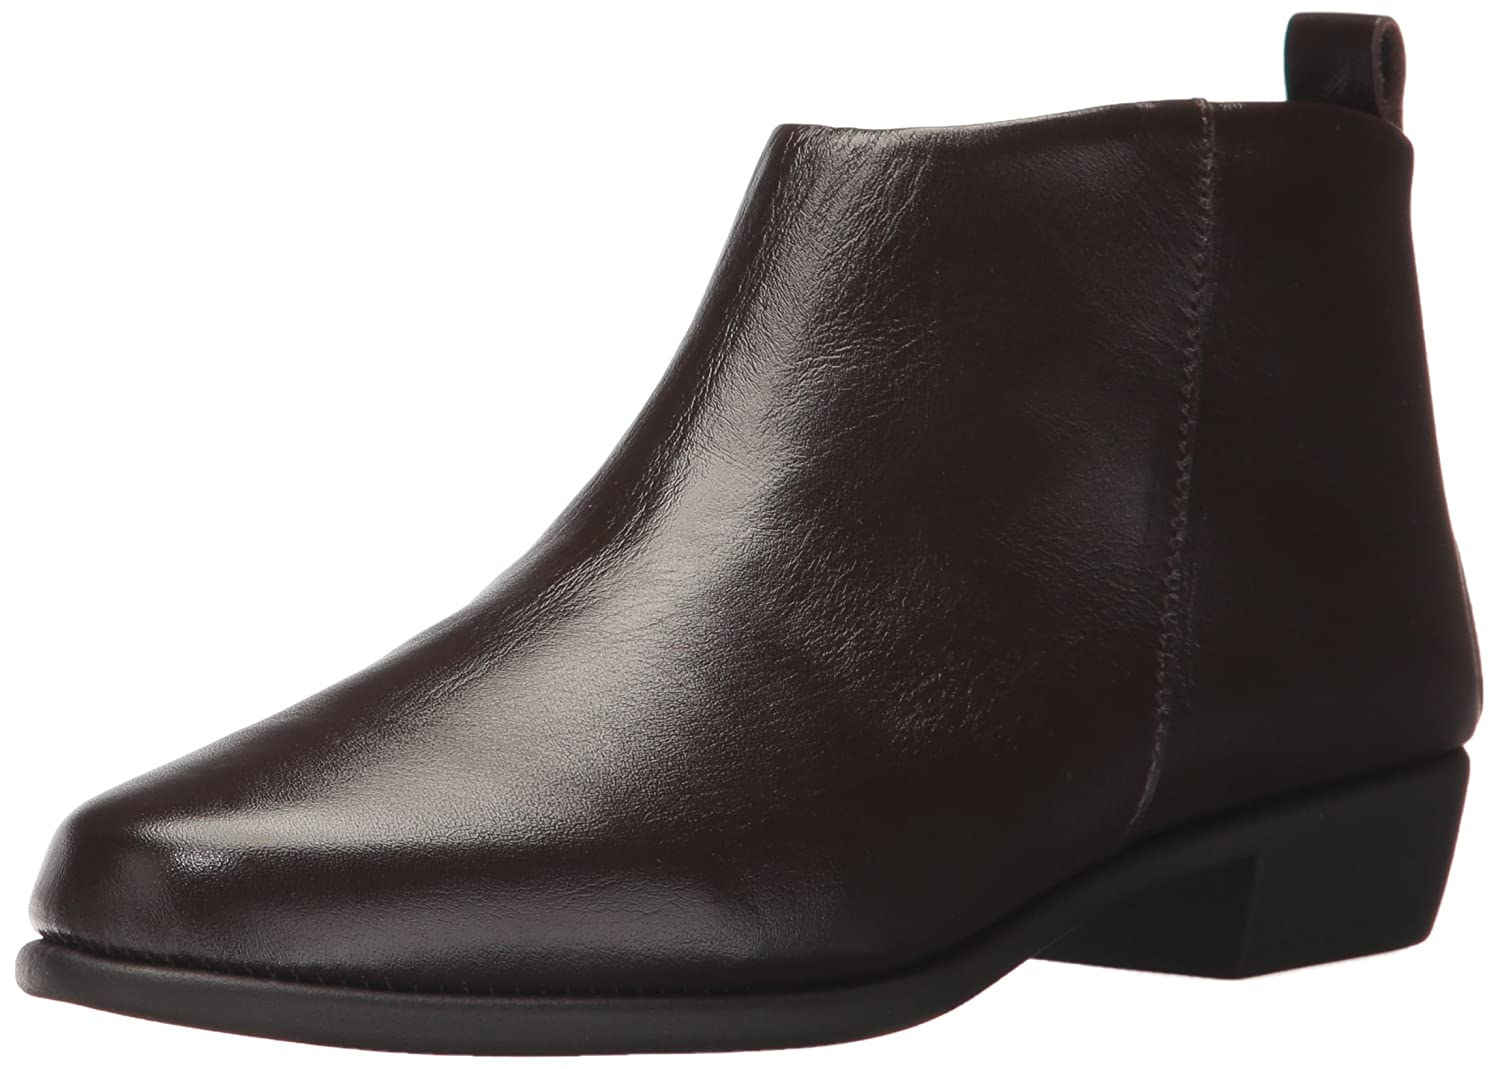 Aerosoles Damens's Tried and True Ankle Boot   Ankle ... 033e91